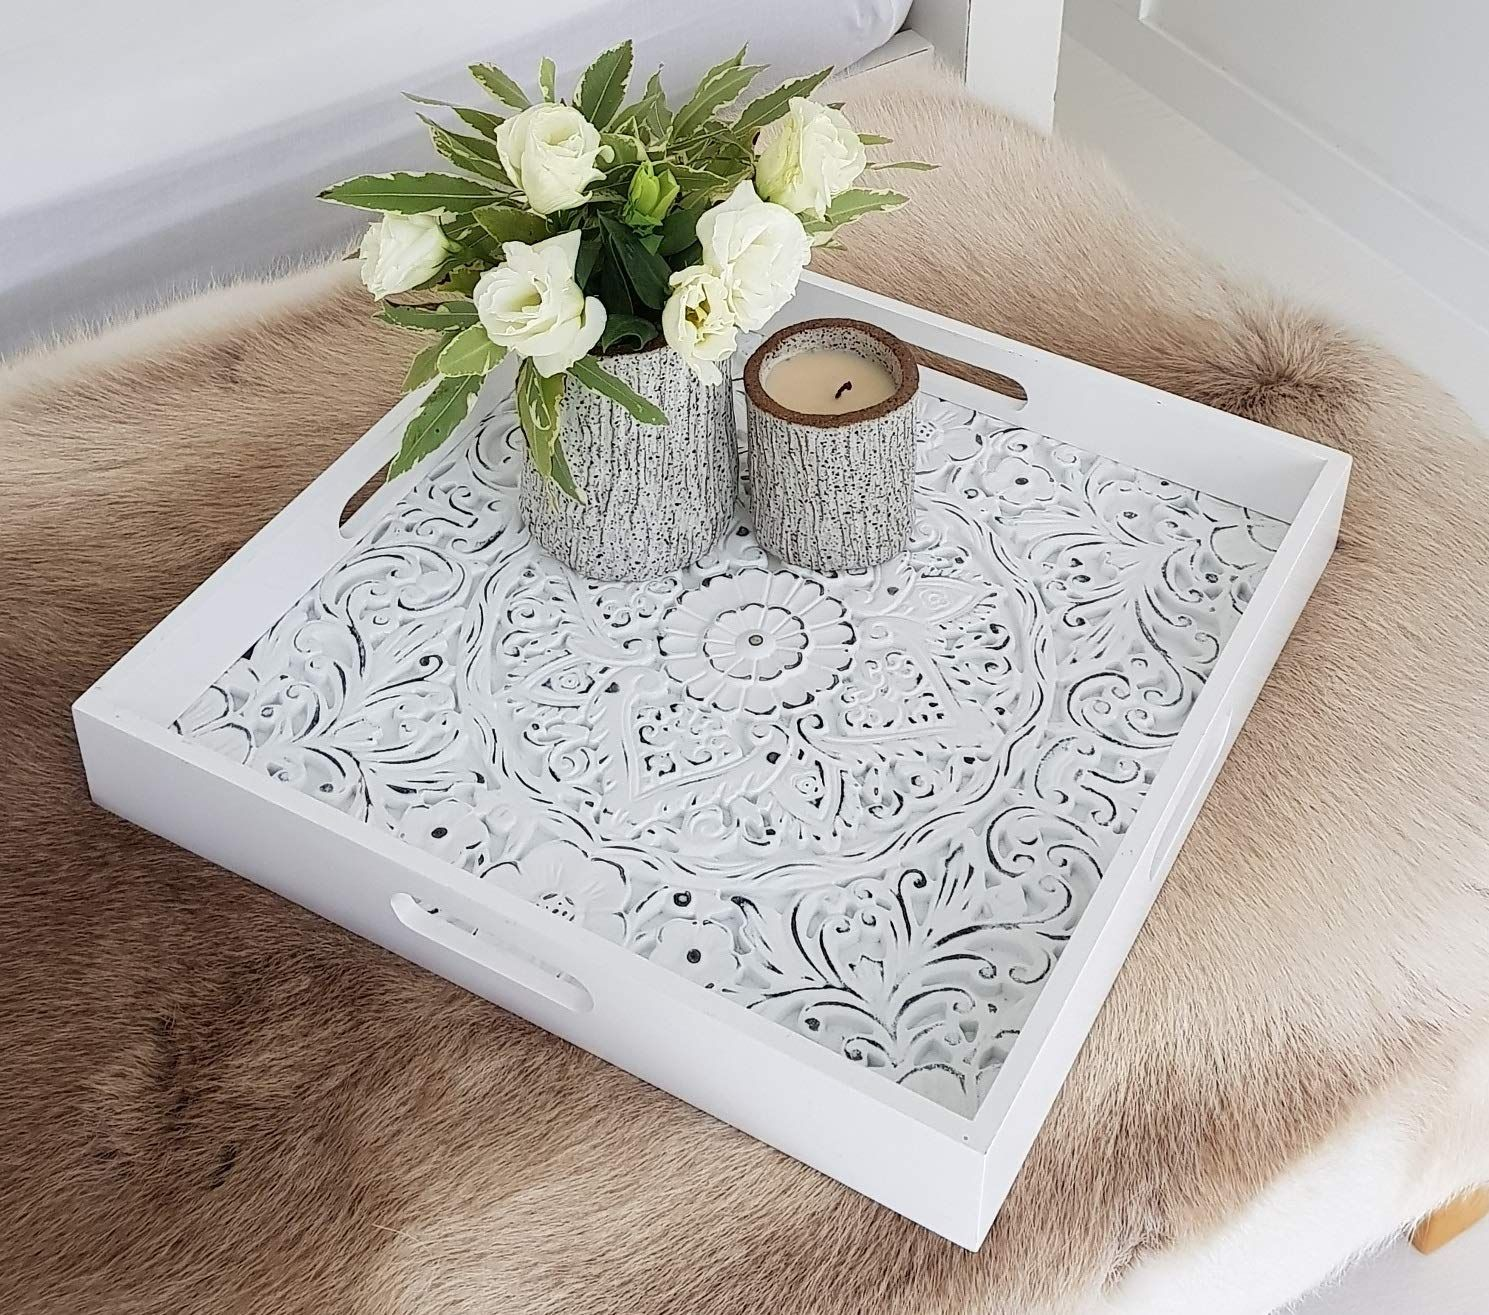 Decorative serving tray for ottomans large square with